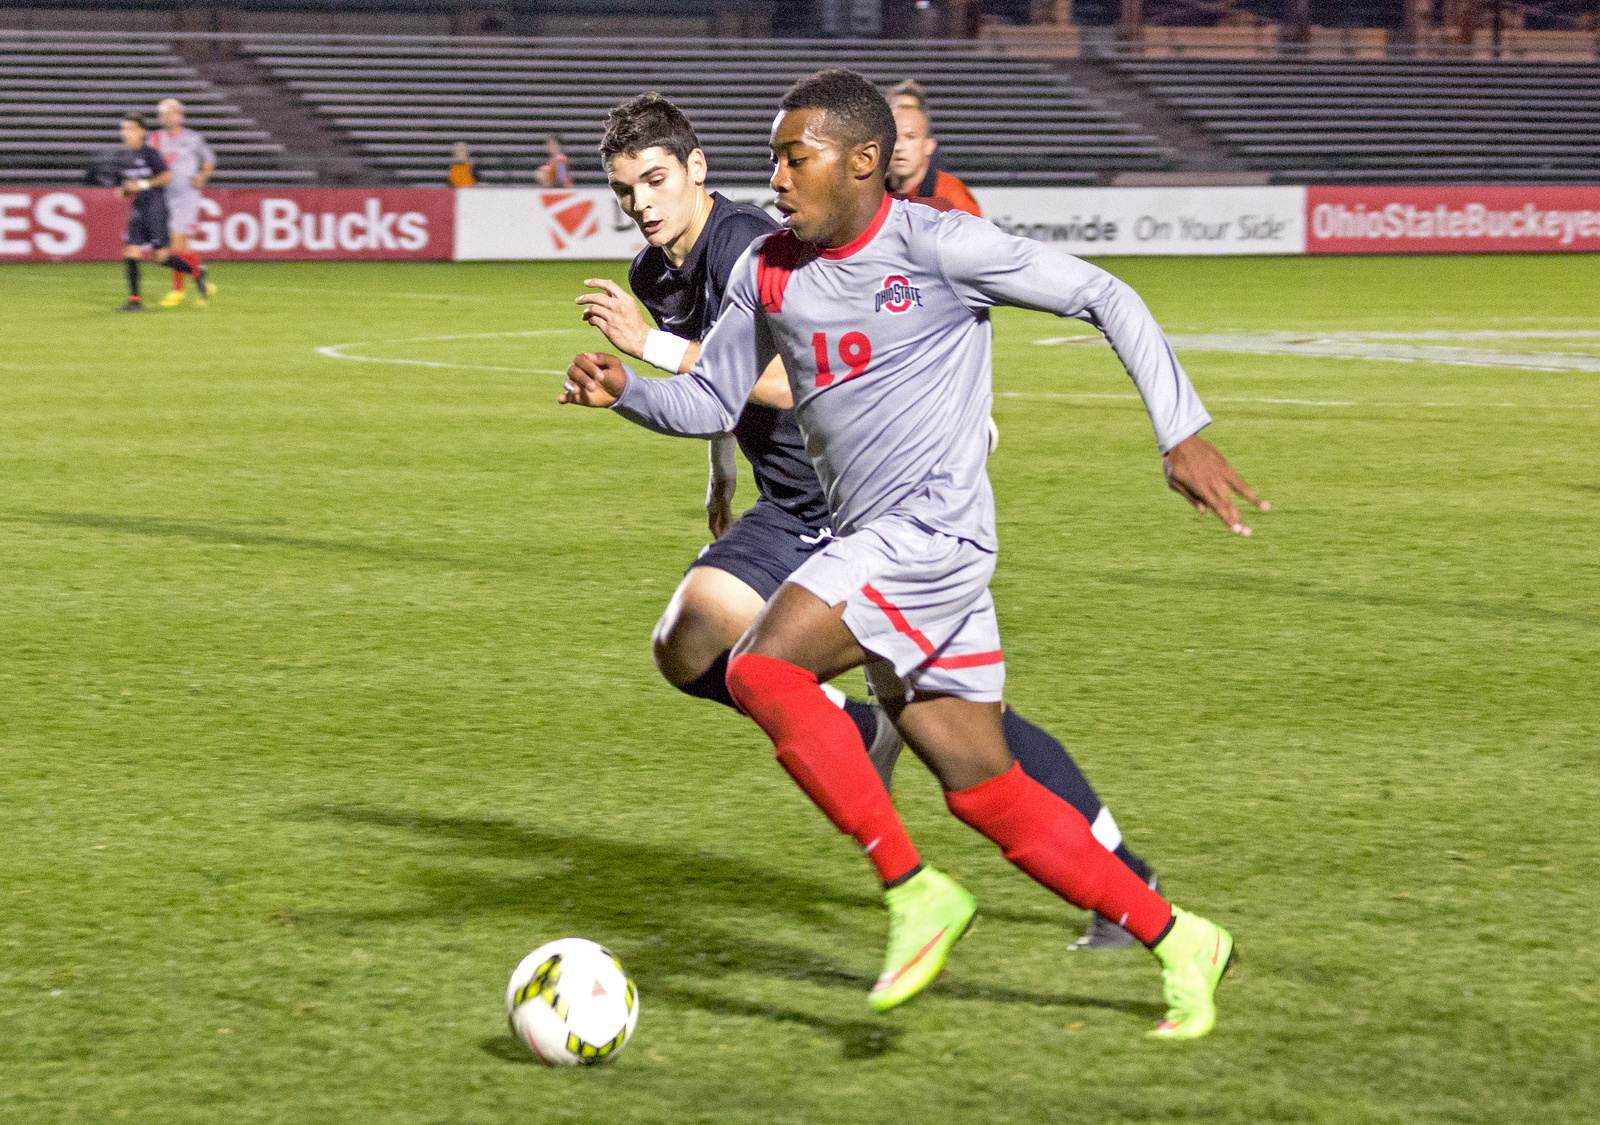 Ohio State men's soccer shut out by Maryland | The Lantern